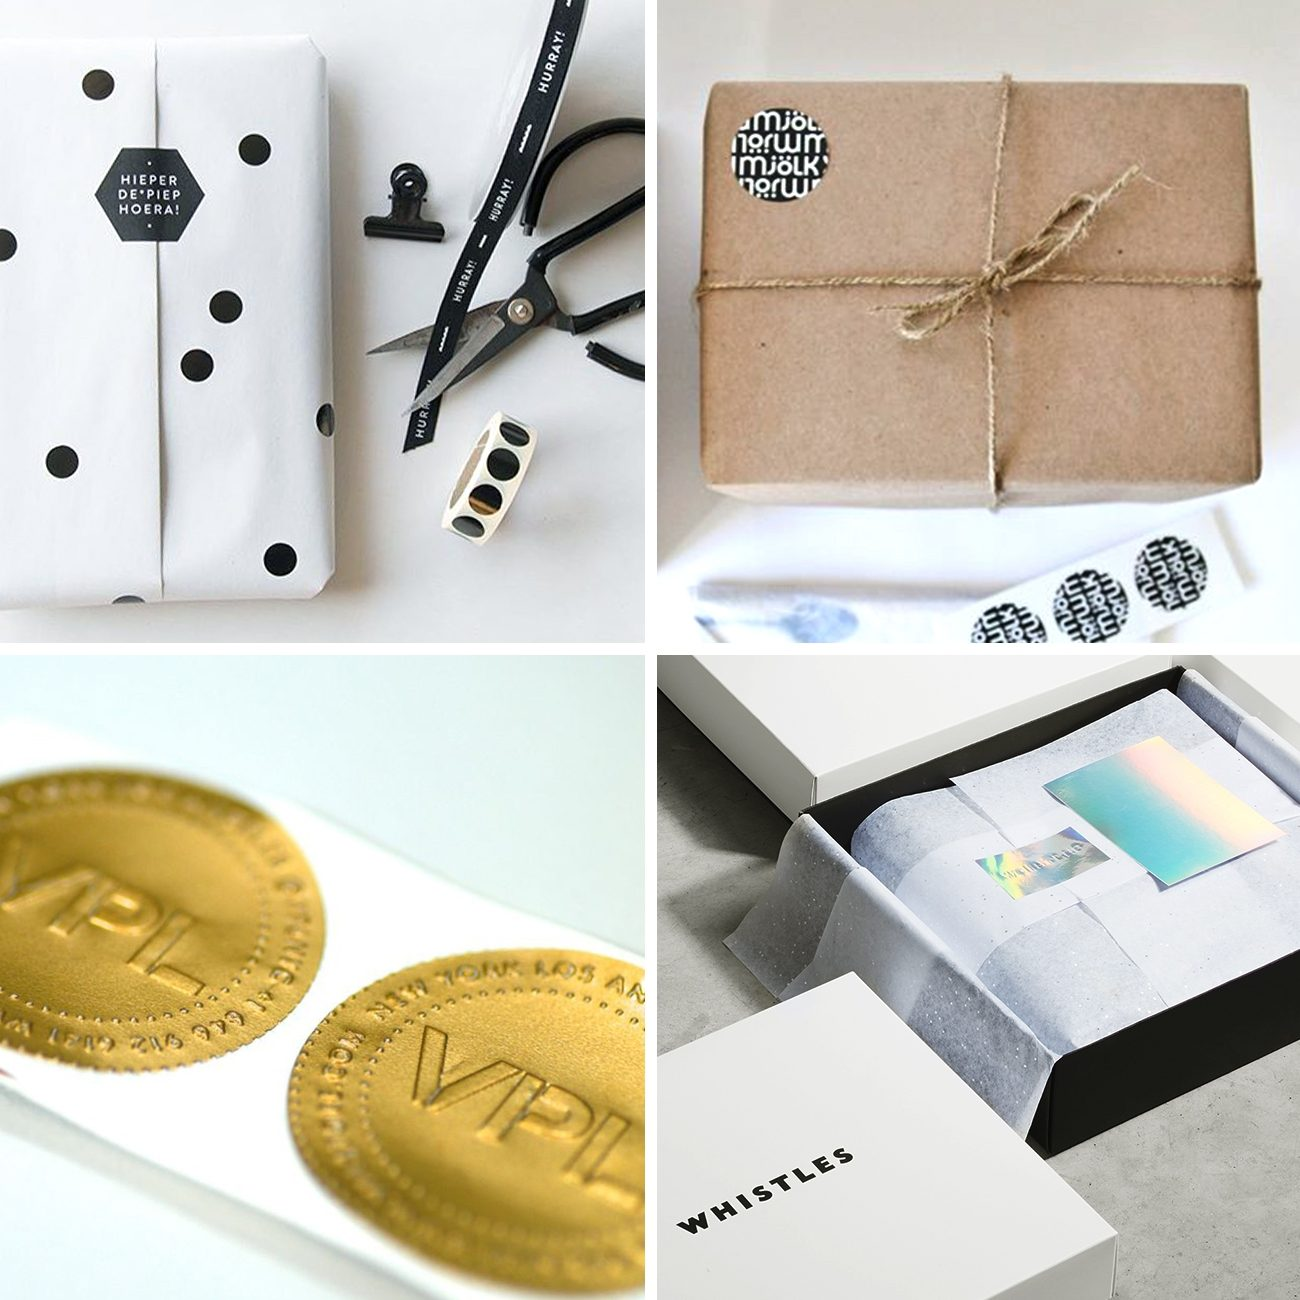 Photos via: Buorx, Kado Design, Salita Bacchi, VPL store, Surface and Form 60 Ideas to Spruce Up Your Holiday Packaging Design